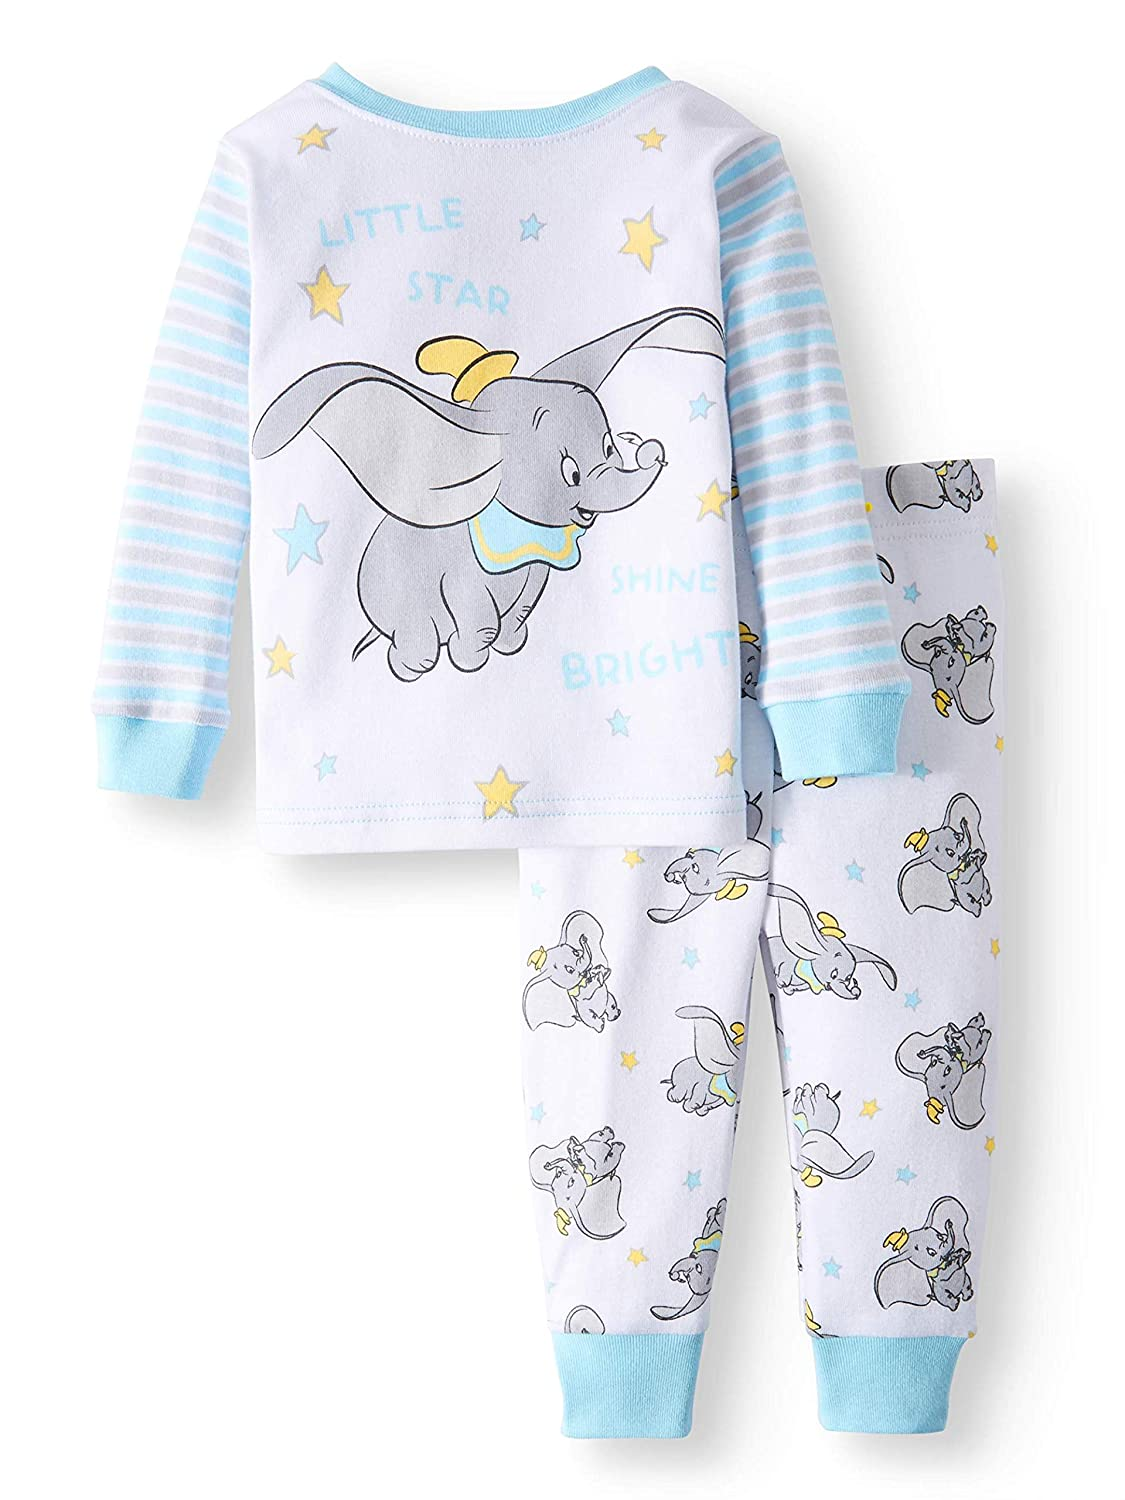 0e4e49619e6 Disney Baby Boys Dumbo Cotton Pajama Set: Amazon.co.uk: Clothing